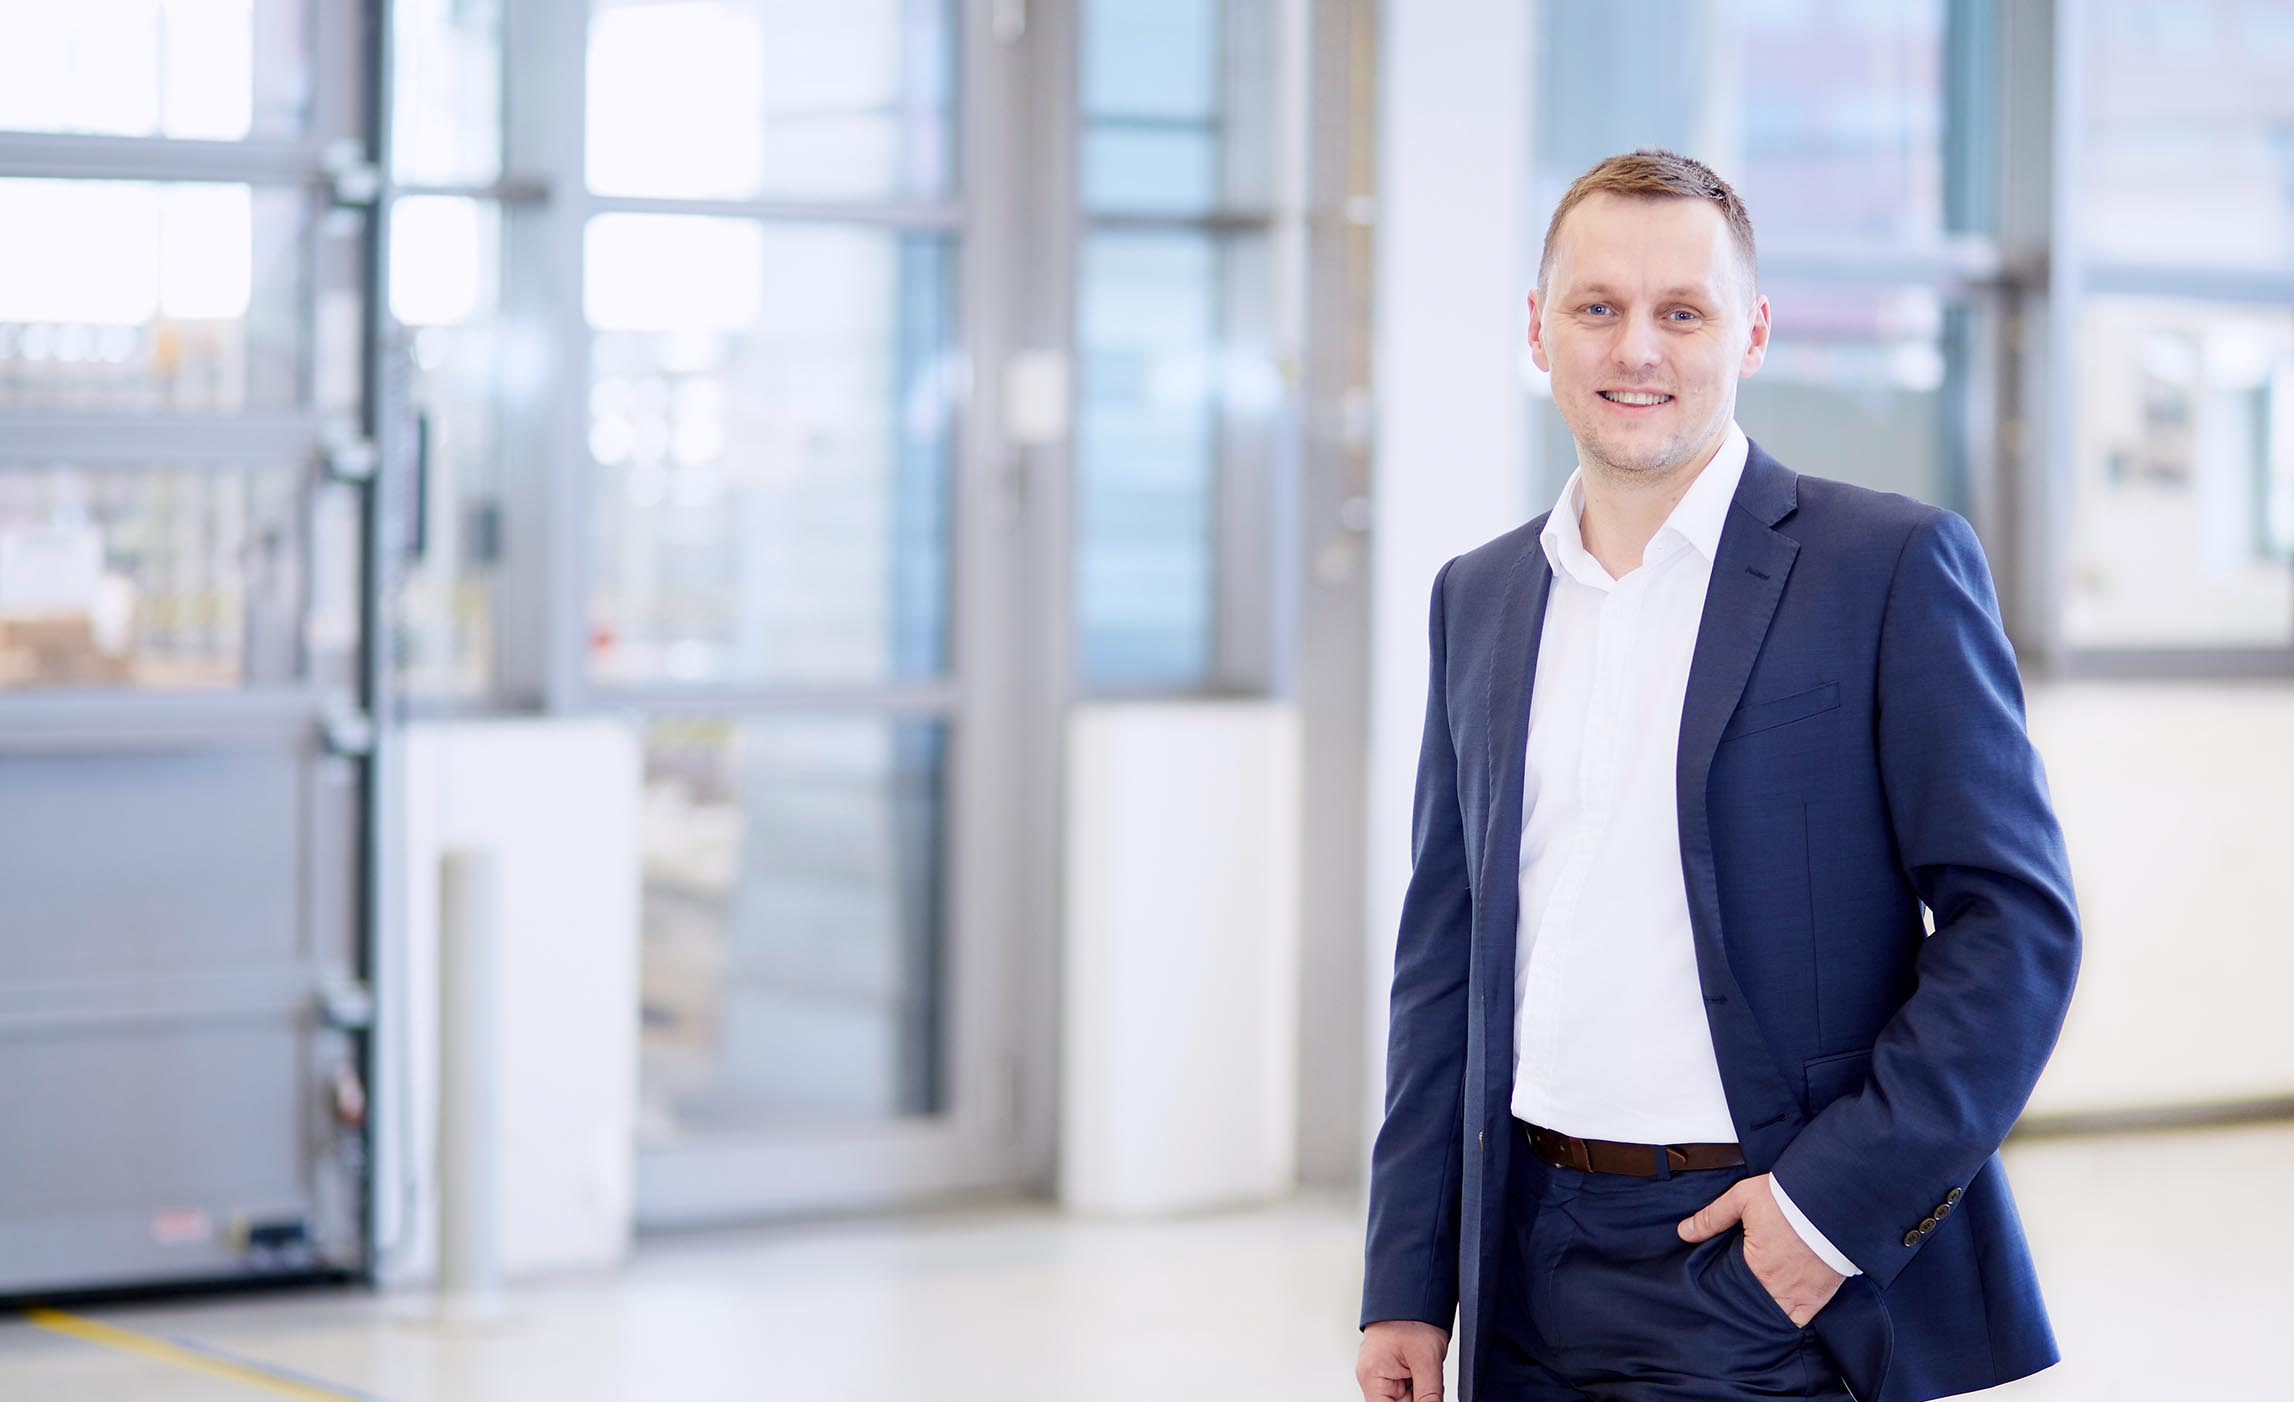 Tadas Jouzonis, Sales & Marketing Executive